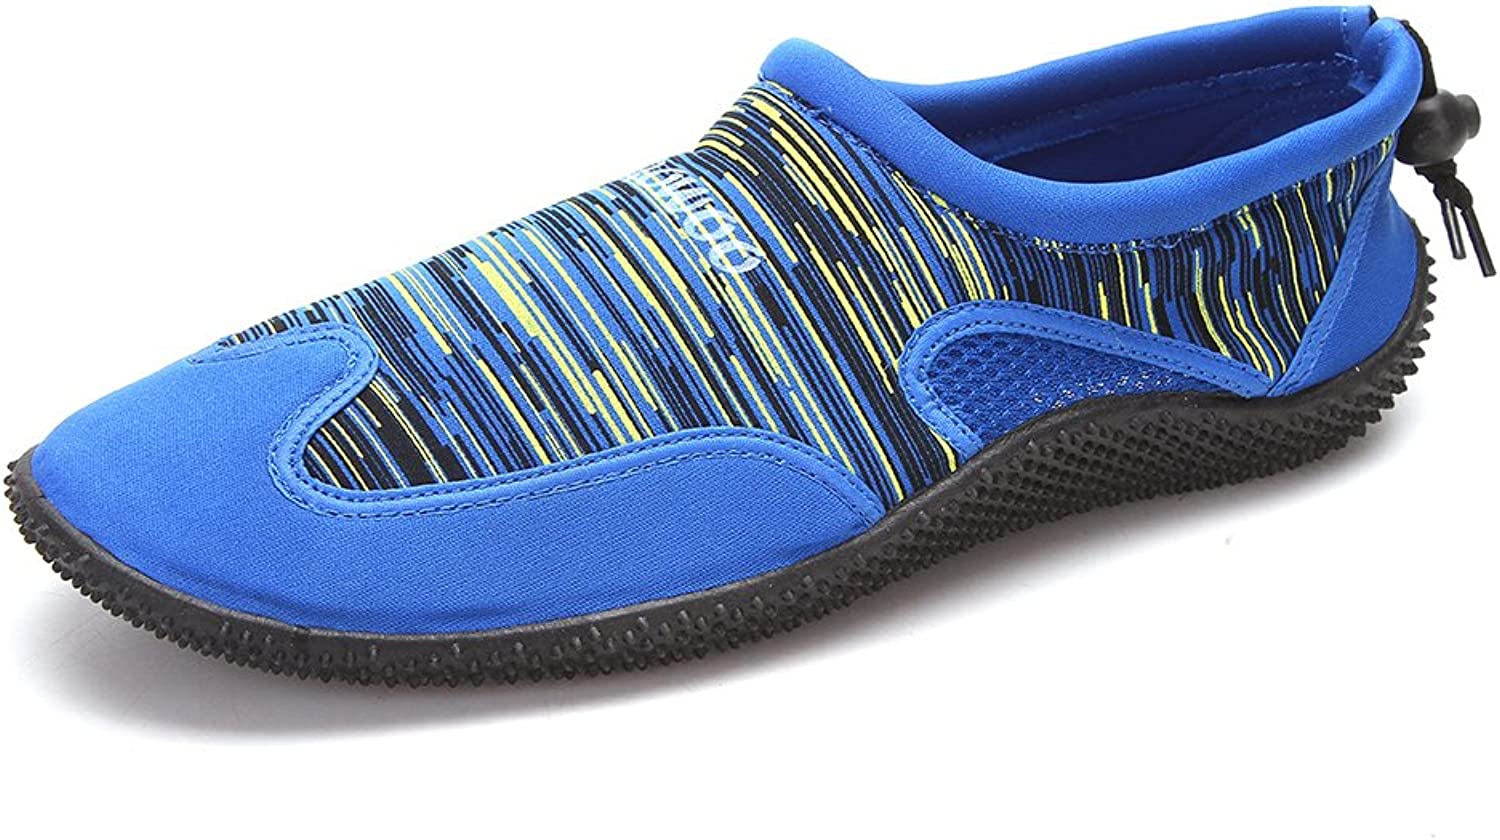 ROWOO Water shoes for Men QuickDry Women Barefoot Aqua shoes for Swimming Surfing Pool shoes